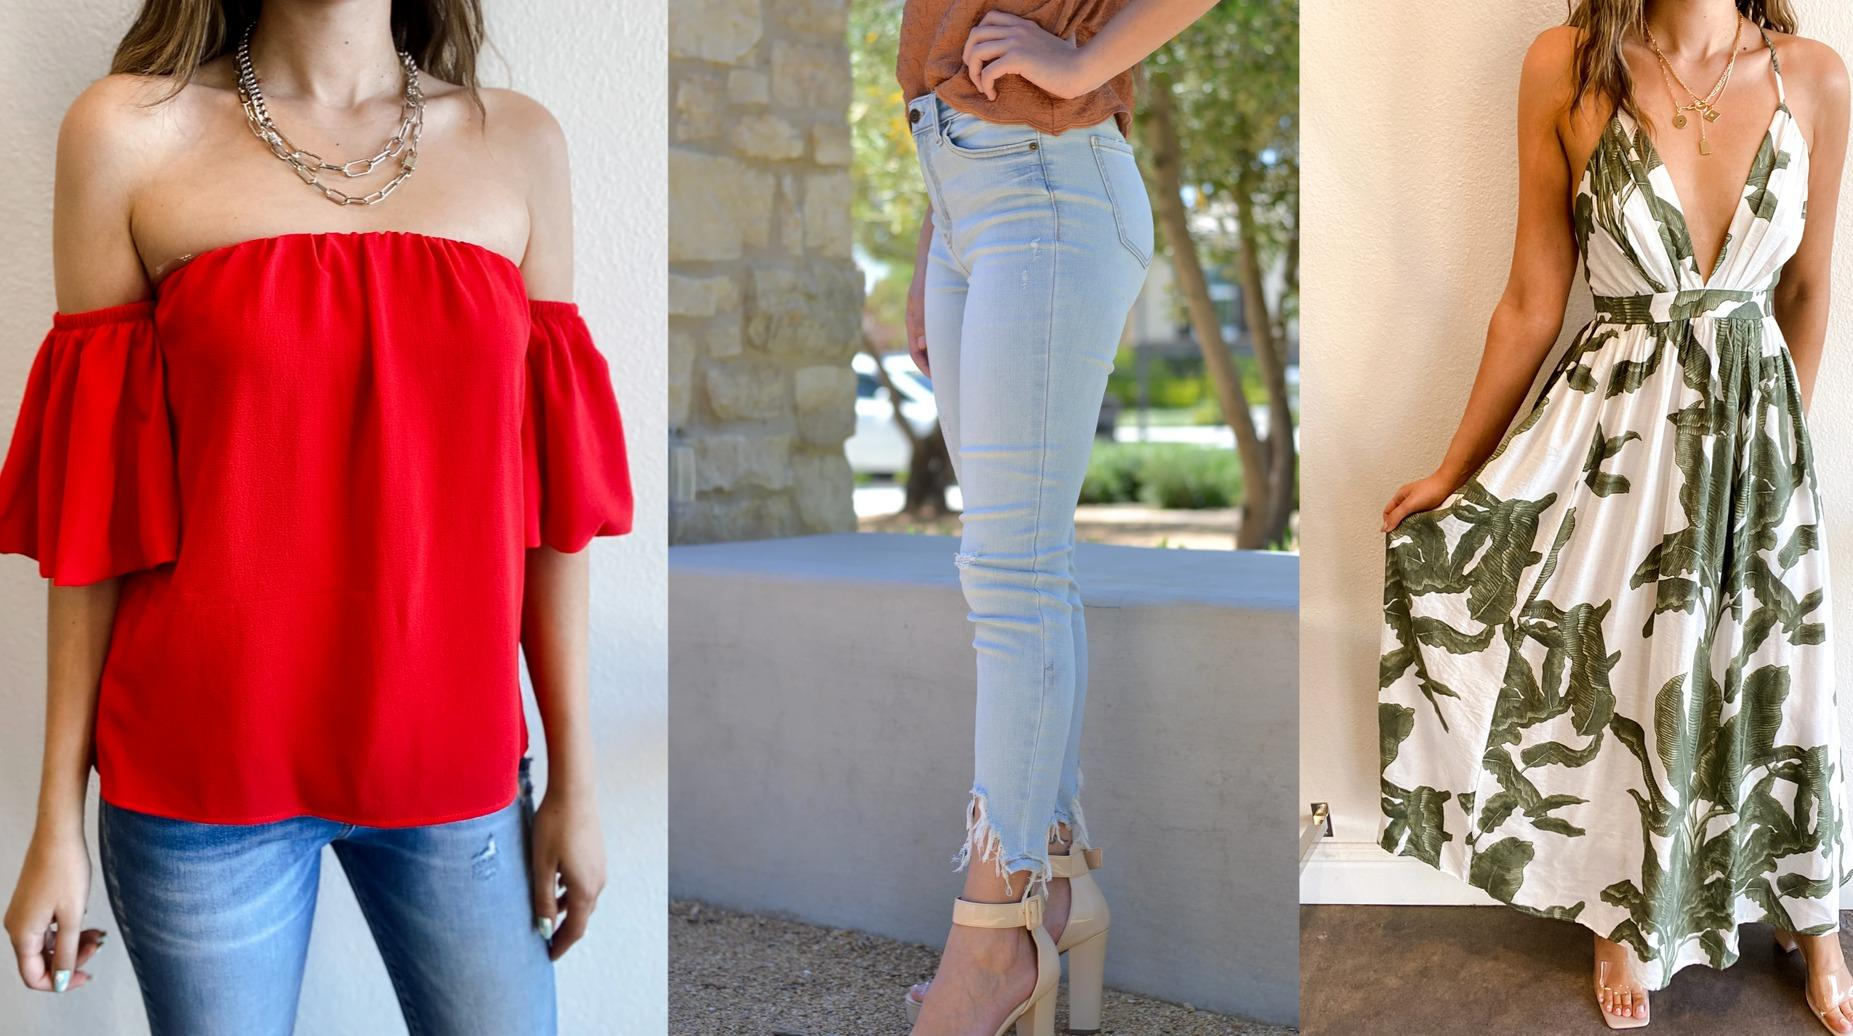 Turn heads with hip women's clothing from Ooh La La in Fresno County